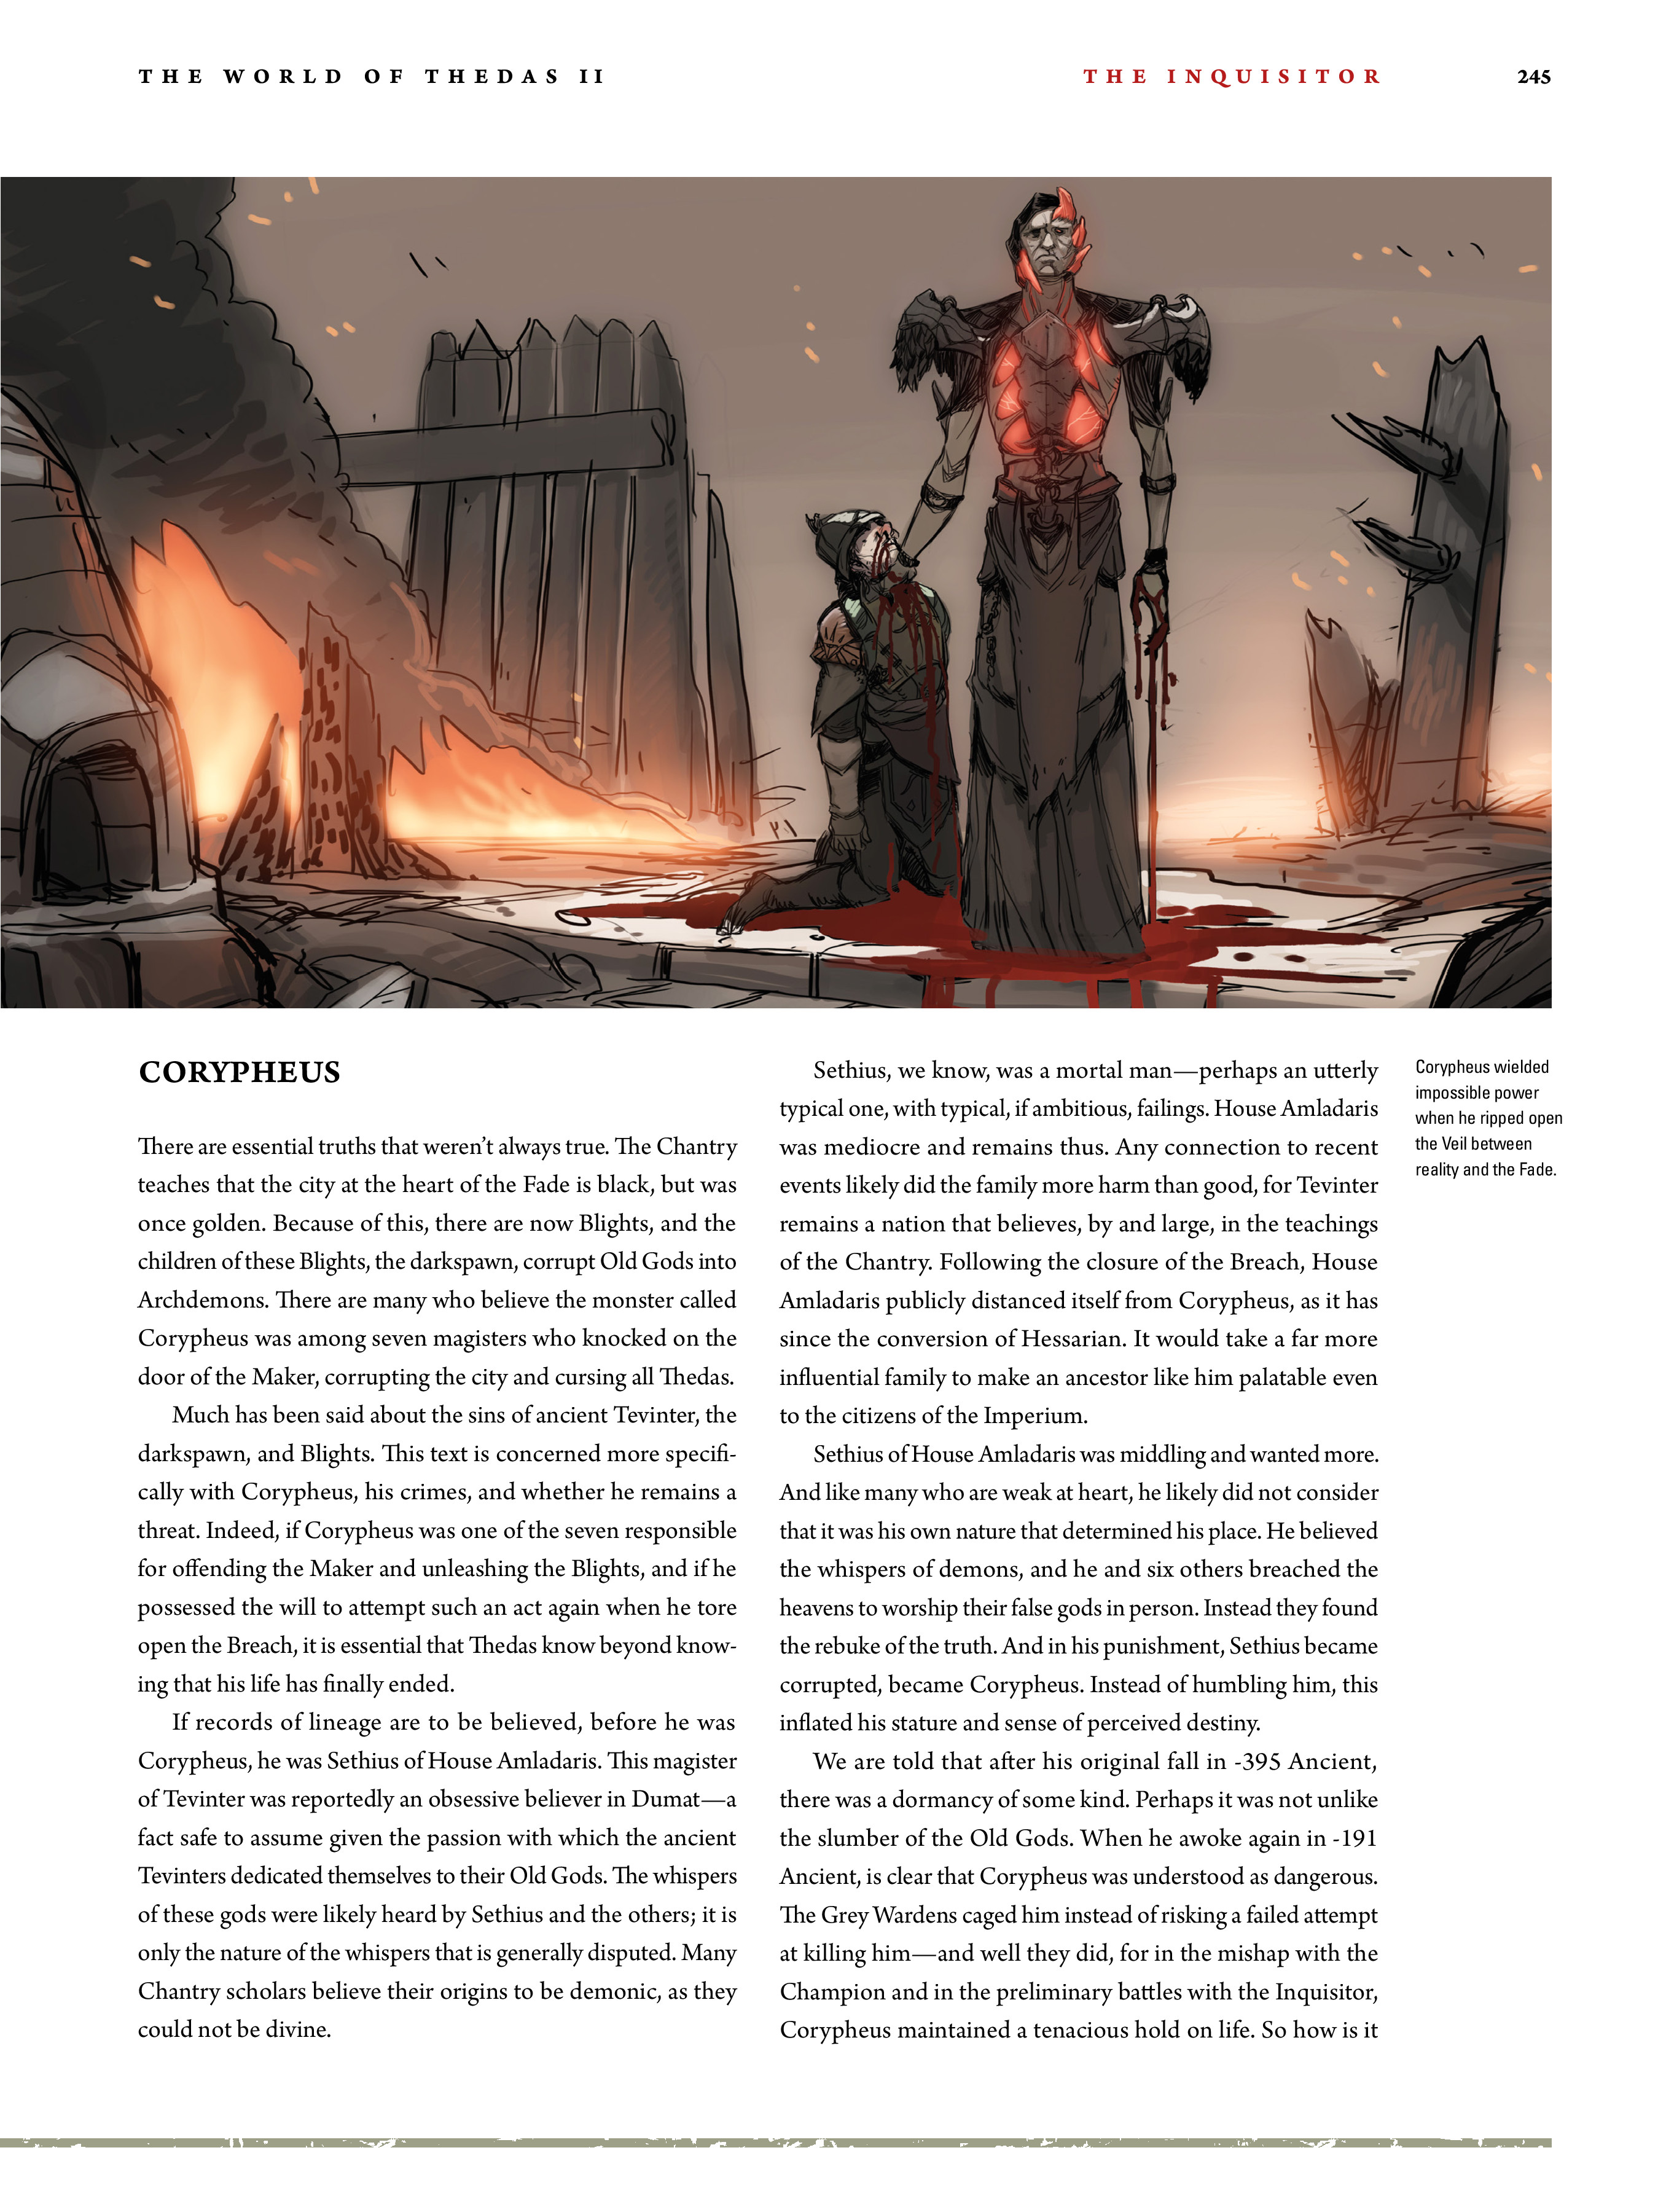 Read online Dragon Age: The World of Thedas comic -  Issue # TPB 2 - 239